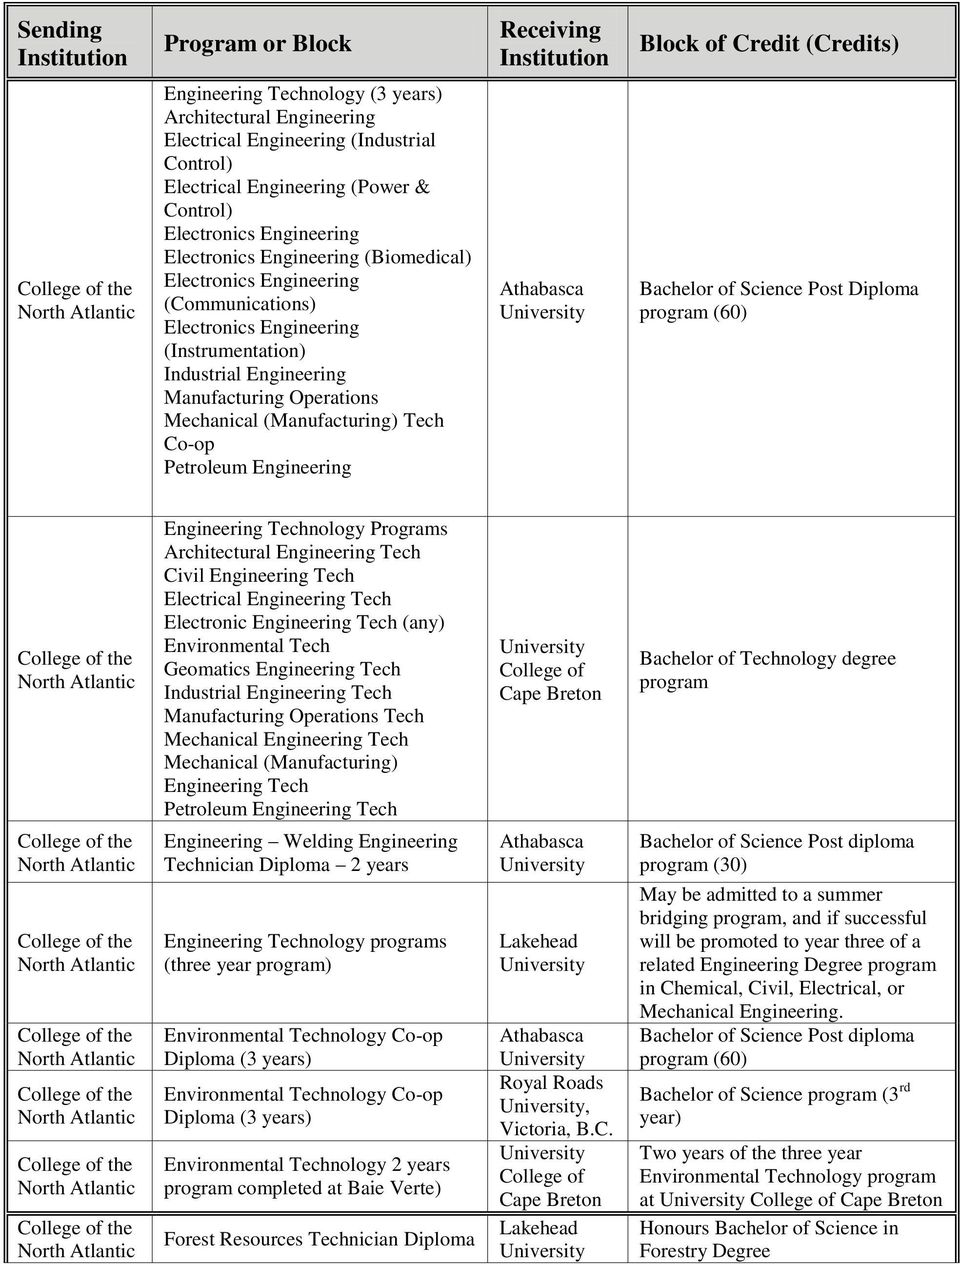 of Science Post Diploma program Engineering Technology Programs Architectural Engineering Tech Civil Engineering Tech Electrical Engineering Tech Electronic Engineering Tech (any) Environmental Tech